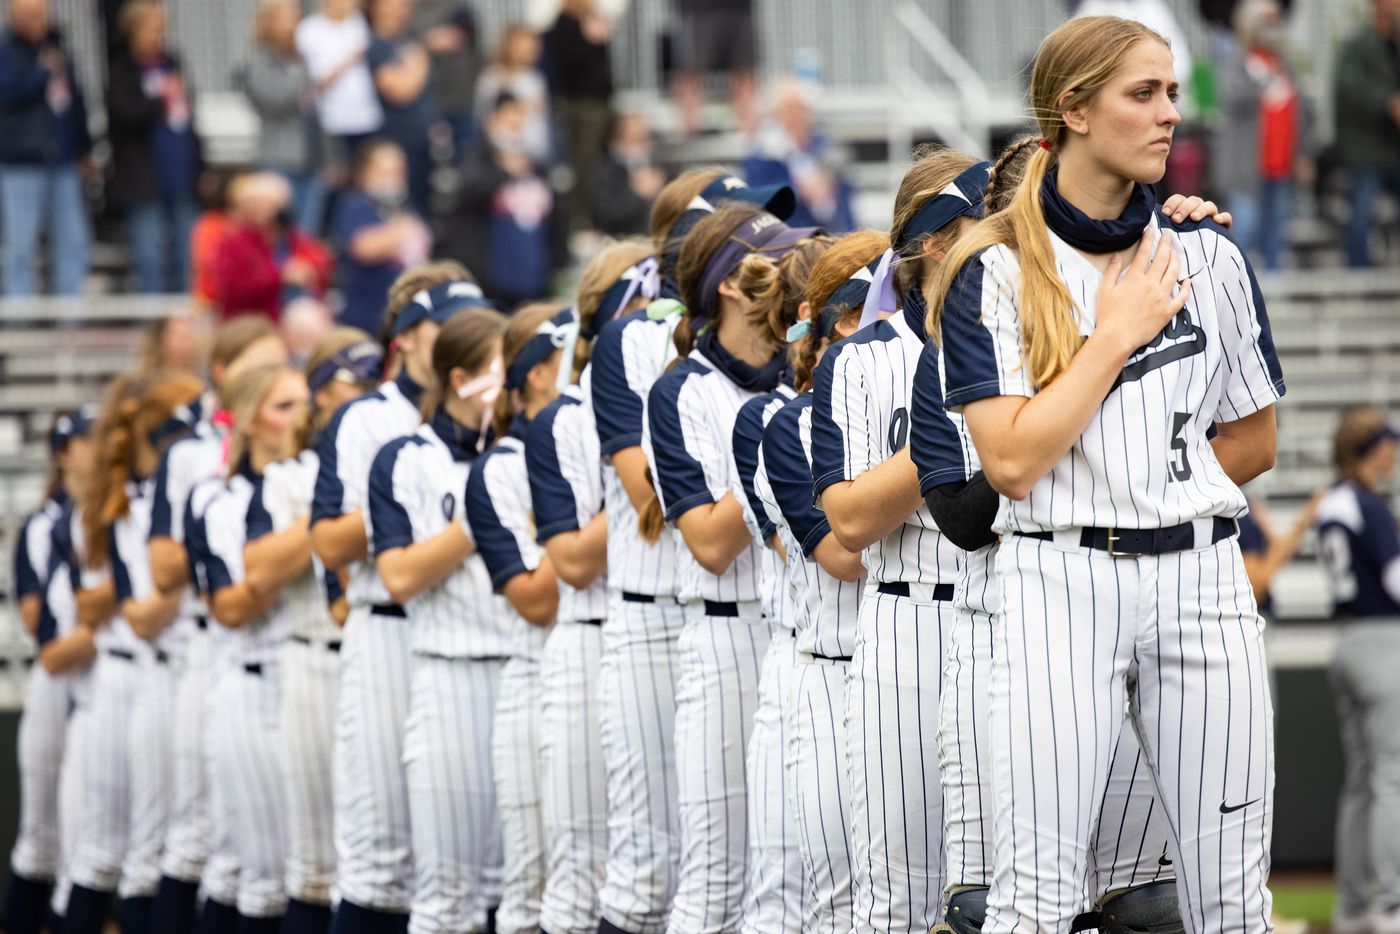 Flower Mound's pitcher Landrie Harris (15) stands with her team during the national anthem before a softball Class 6A bi-district playoff game against McKinney Boyd on Friday, April 30, 2021, in Denton. (Juan Figueroa/The Dallas Morning News)